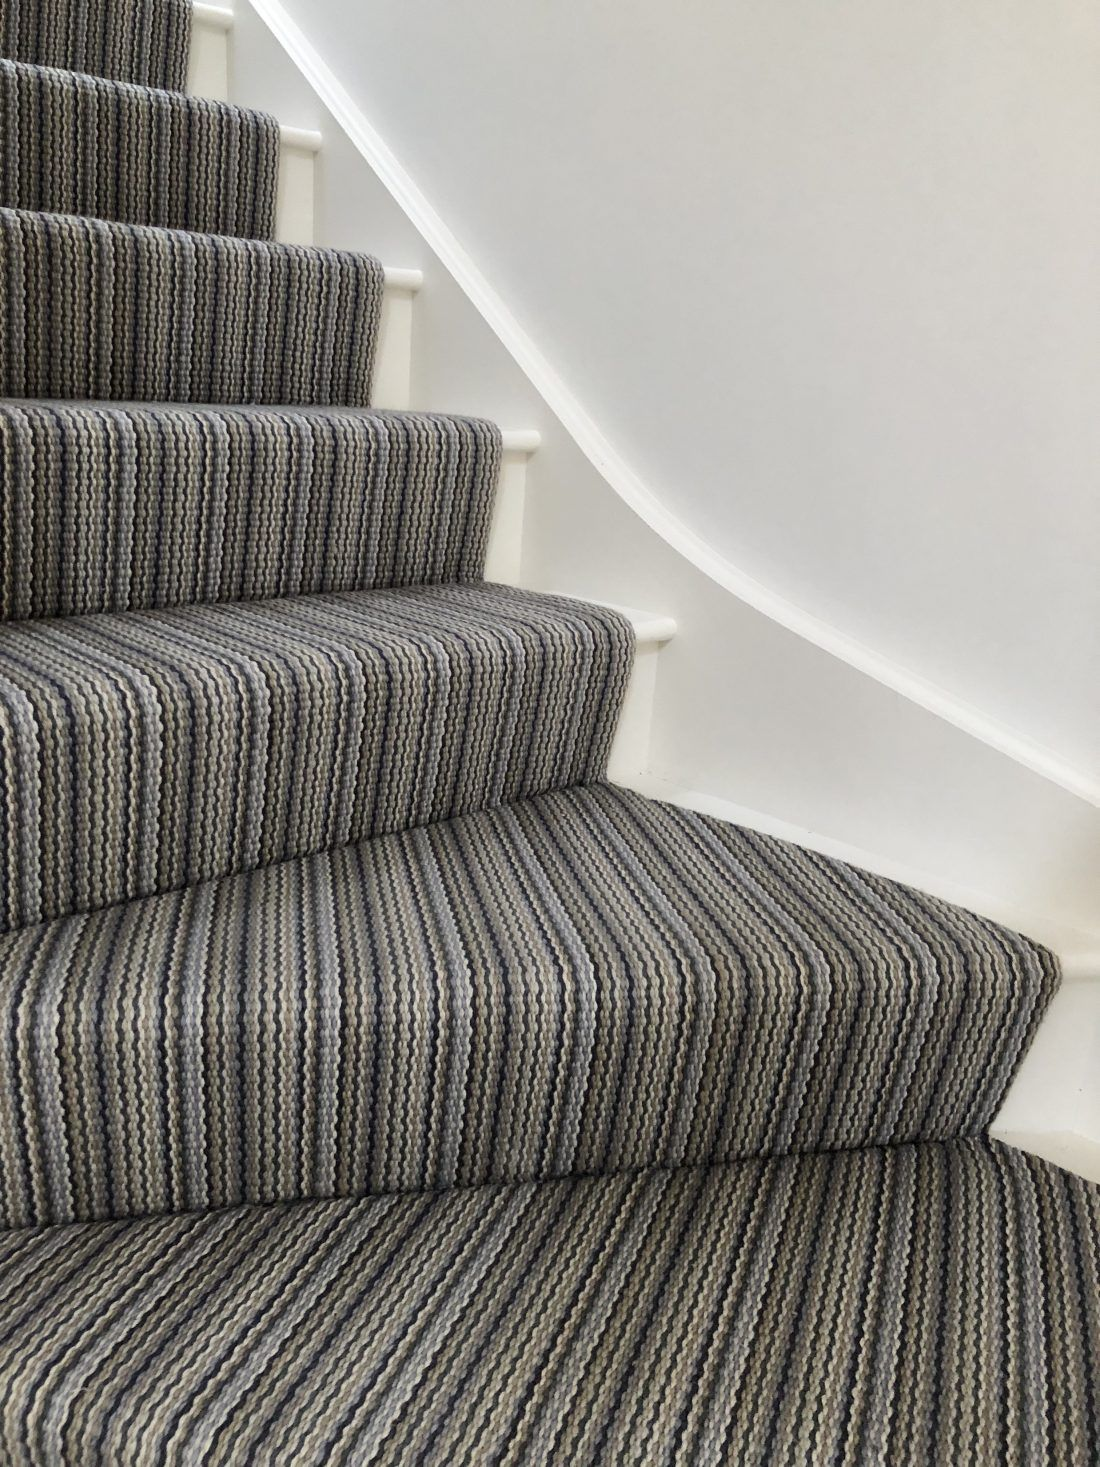 Best Middleton 5 Off The Loom Stair Runner Stairs Flat Weave 400 x 300